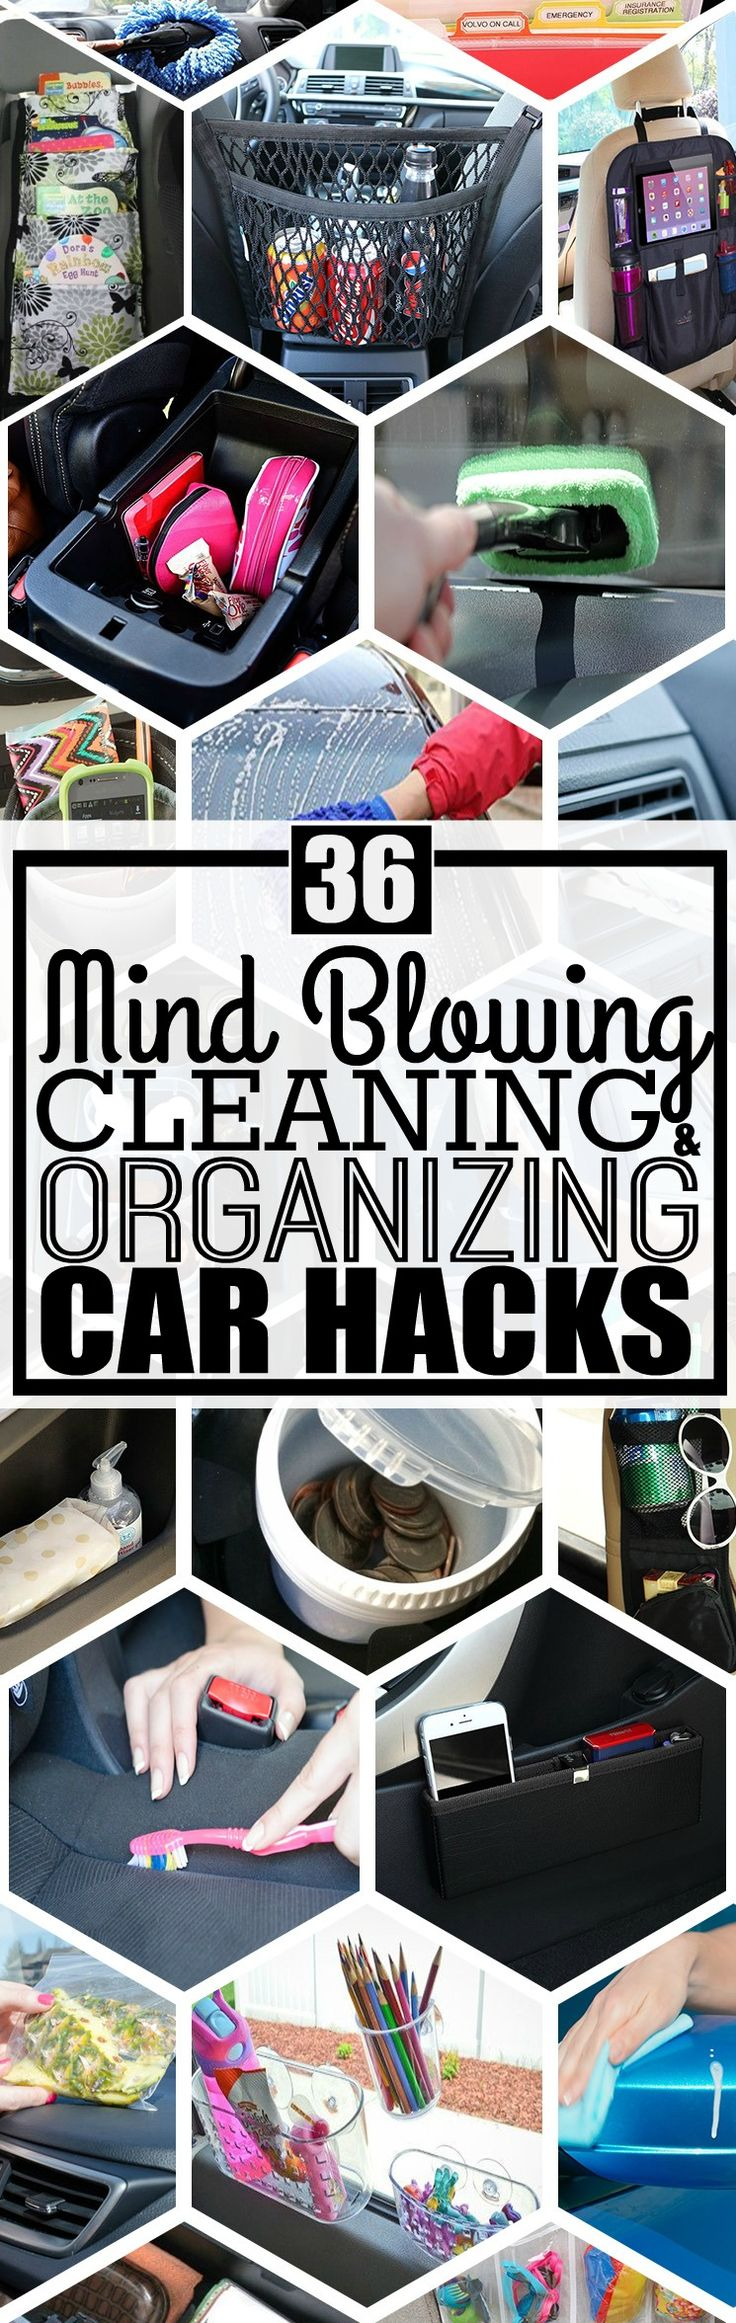 Keep your car organized and clean with these awesome car organization ideas and car cleaning tips. You have to read these tips on how to organize your car, car cleaning tips, and more.